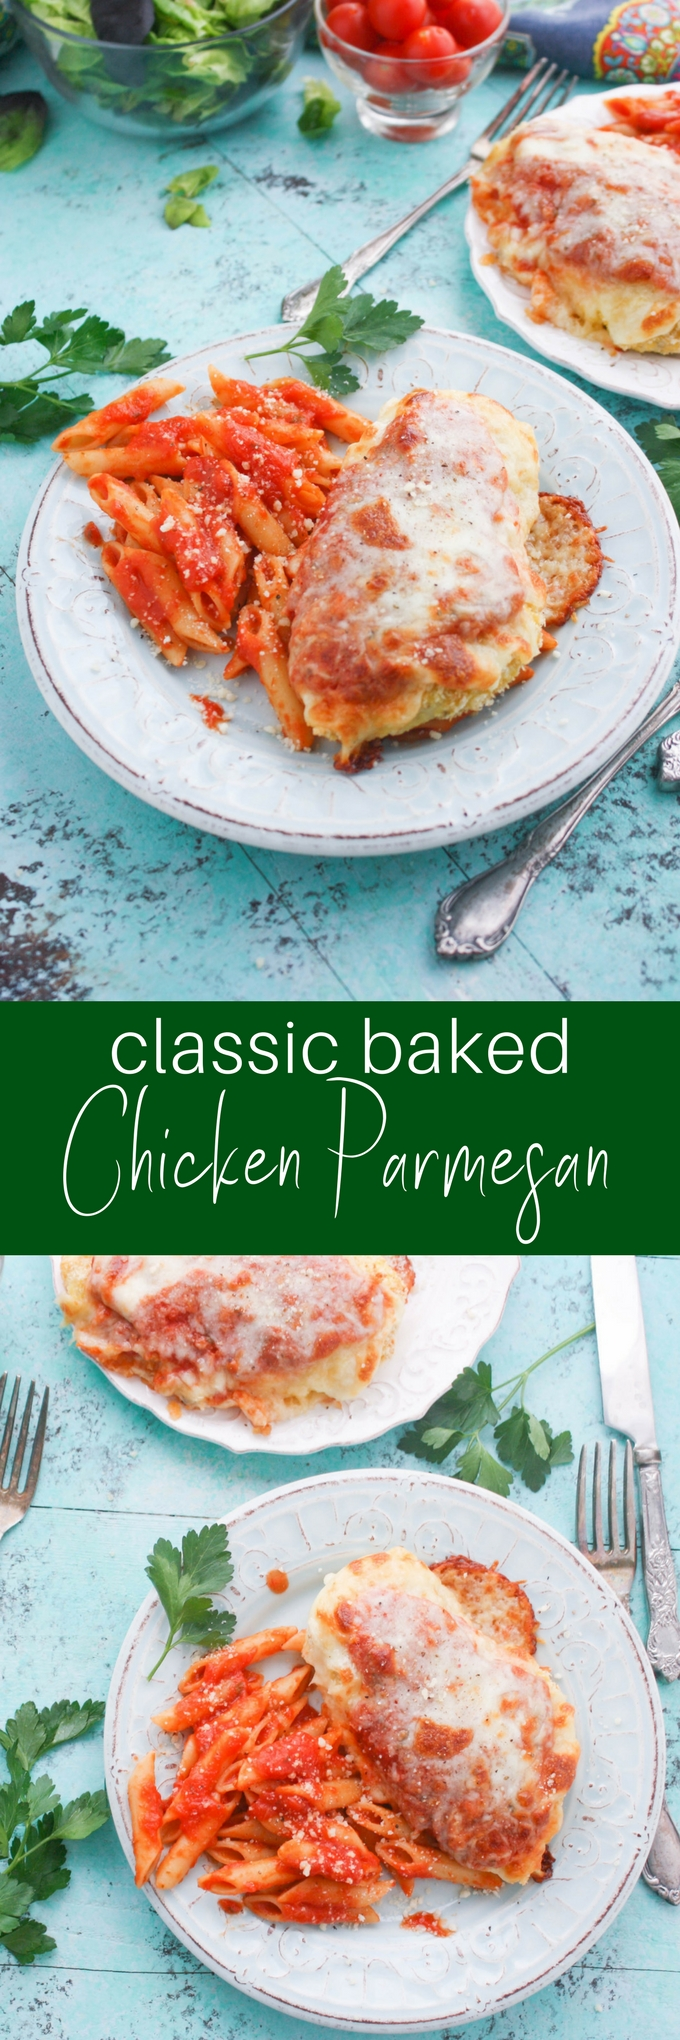 Classic Baked Chicken Parmesan is a restaurant favorite to make at home. Classic Baked Chicken Parmesan will become a favorite in your home!